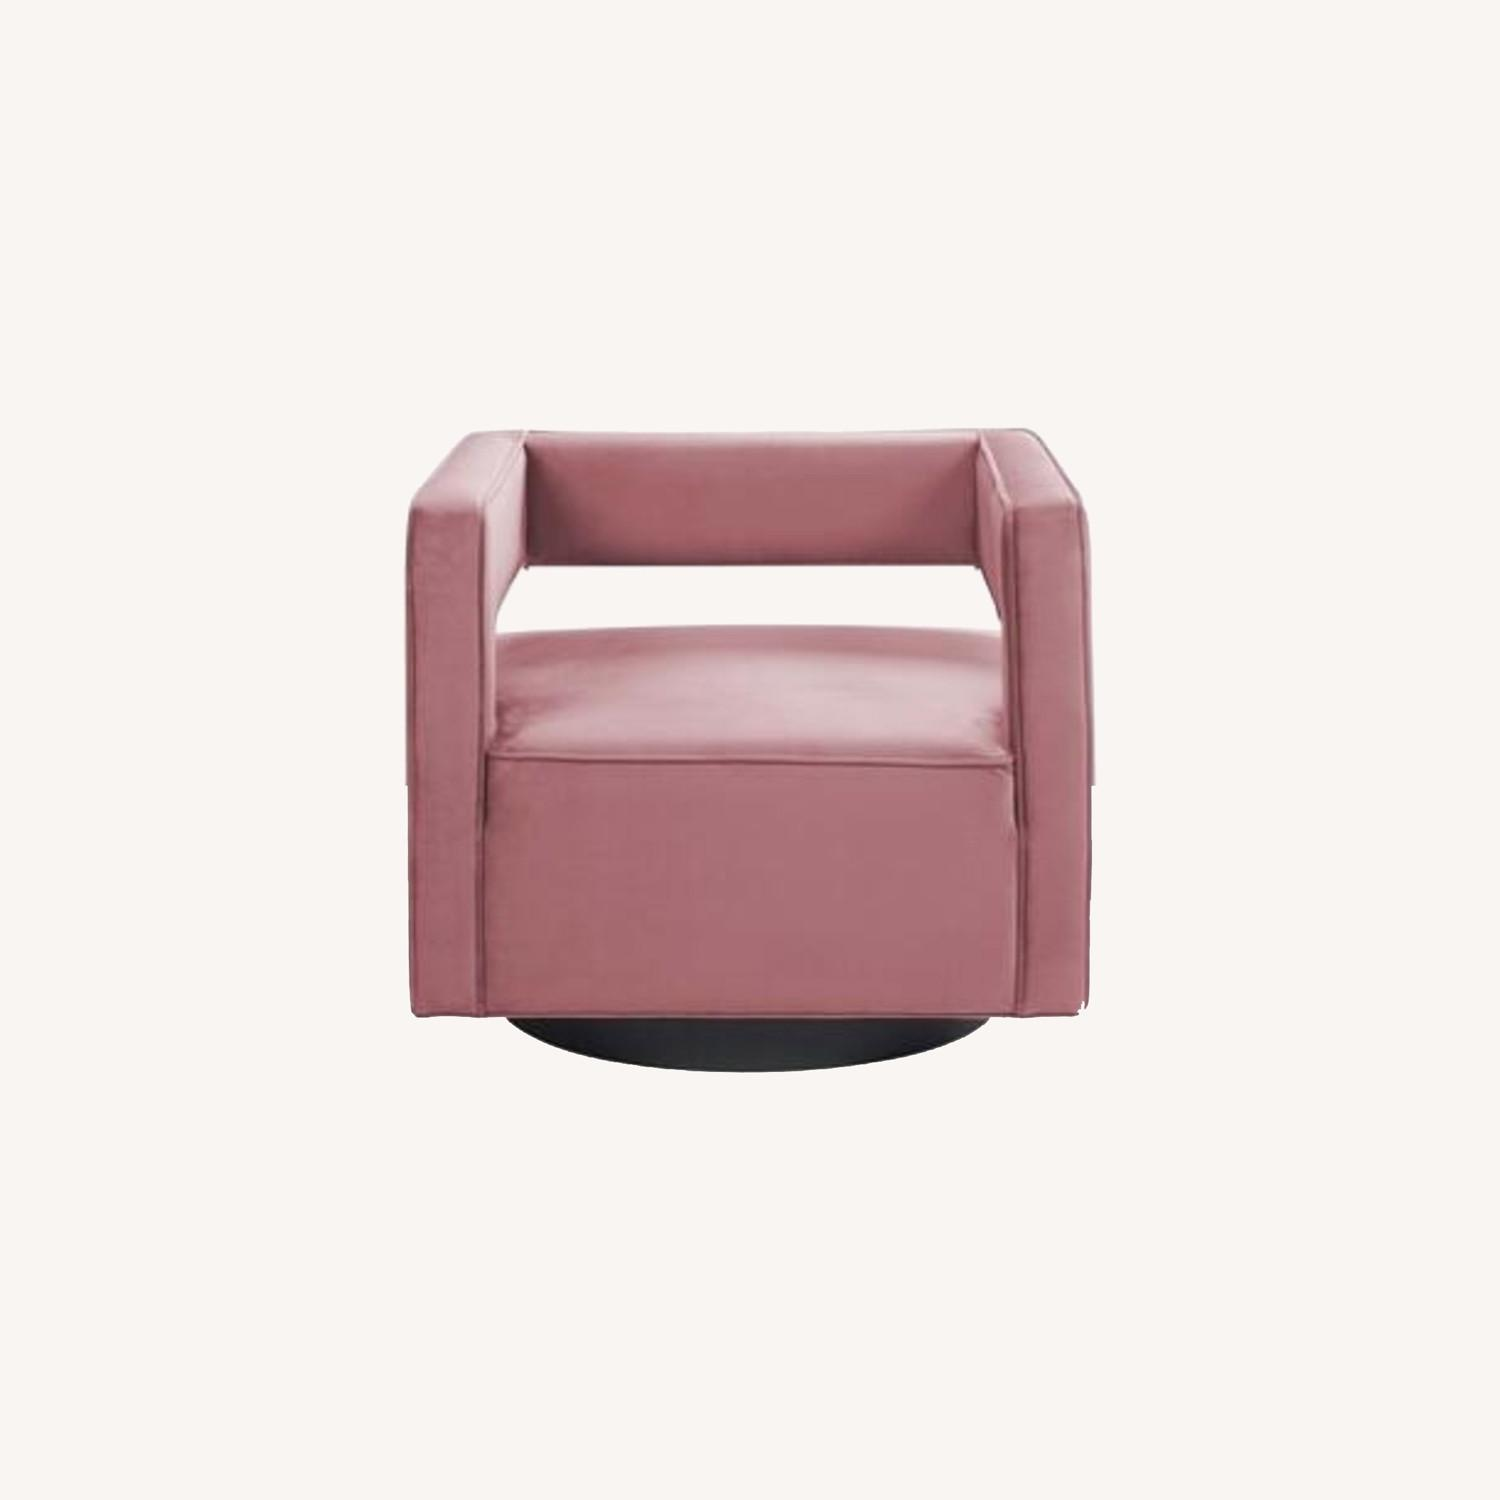 Armchair In Dusty Rose W/ Squared Cutaway Back - image-7